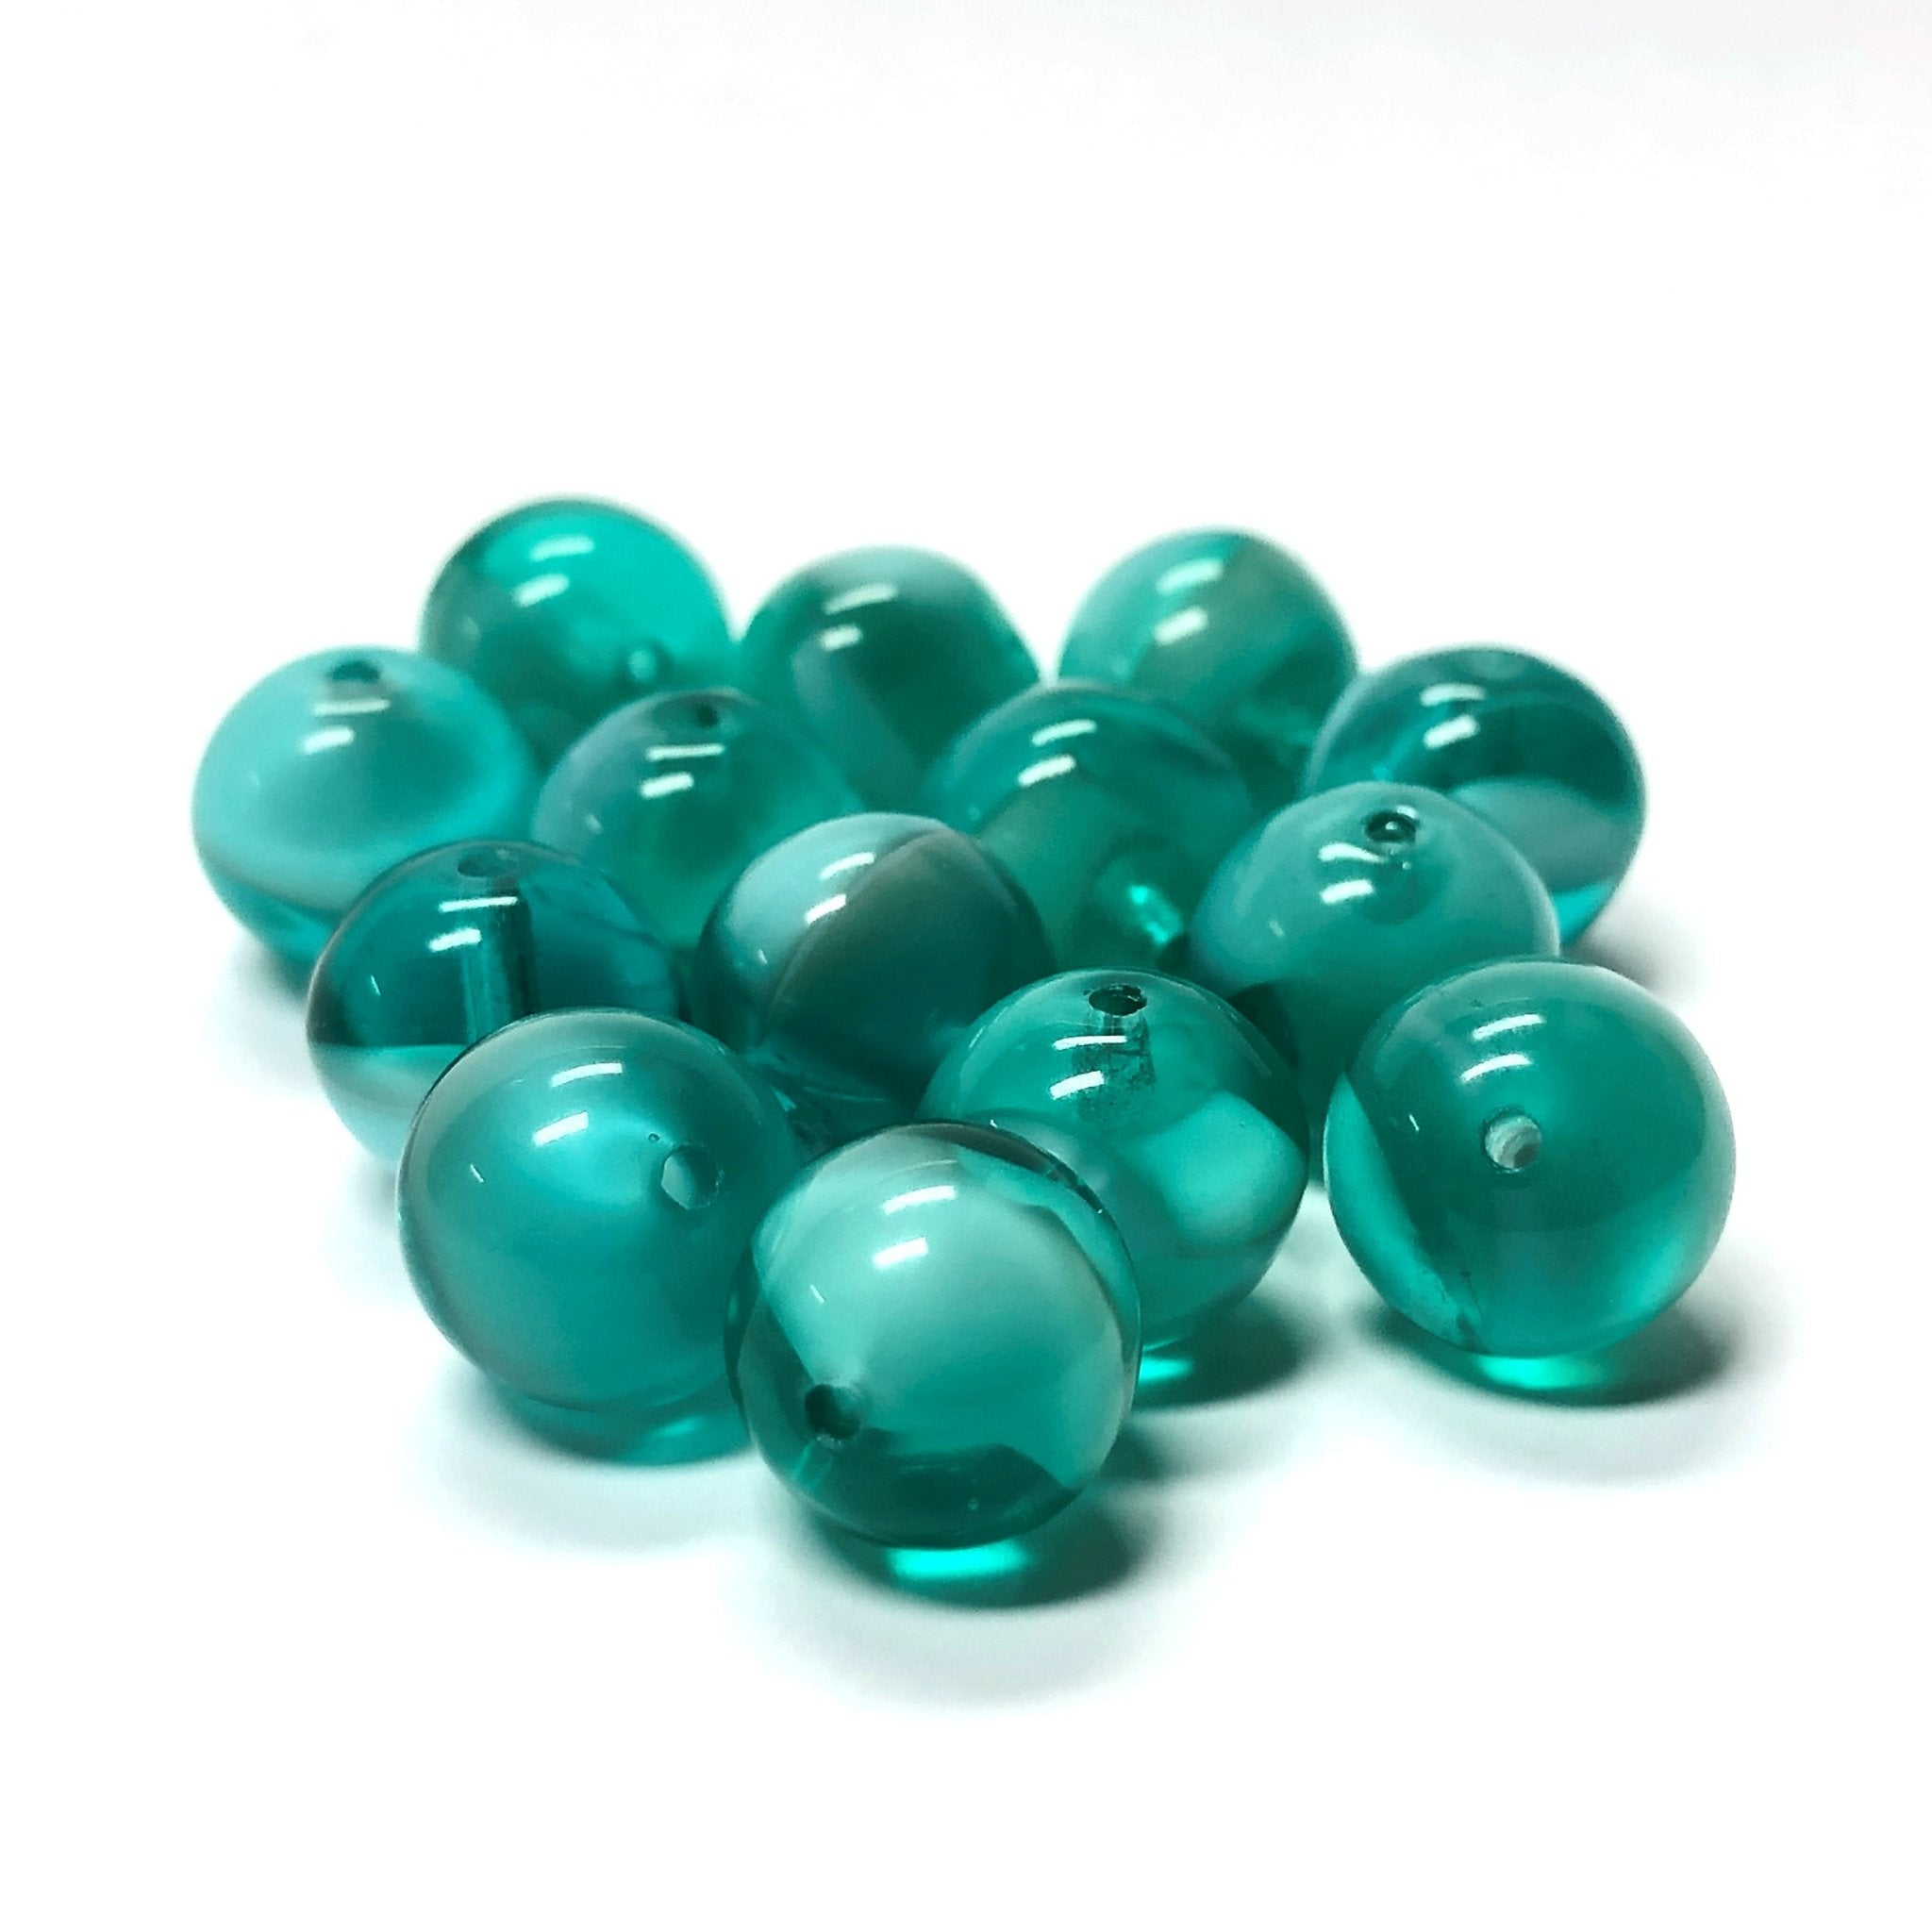 8MM Teal Blue-Green Givre Glass Bead (72 pieces)